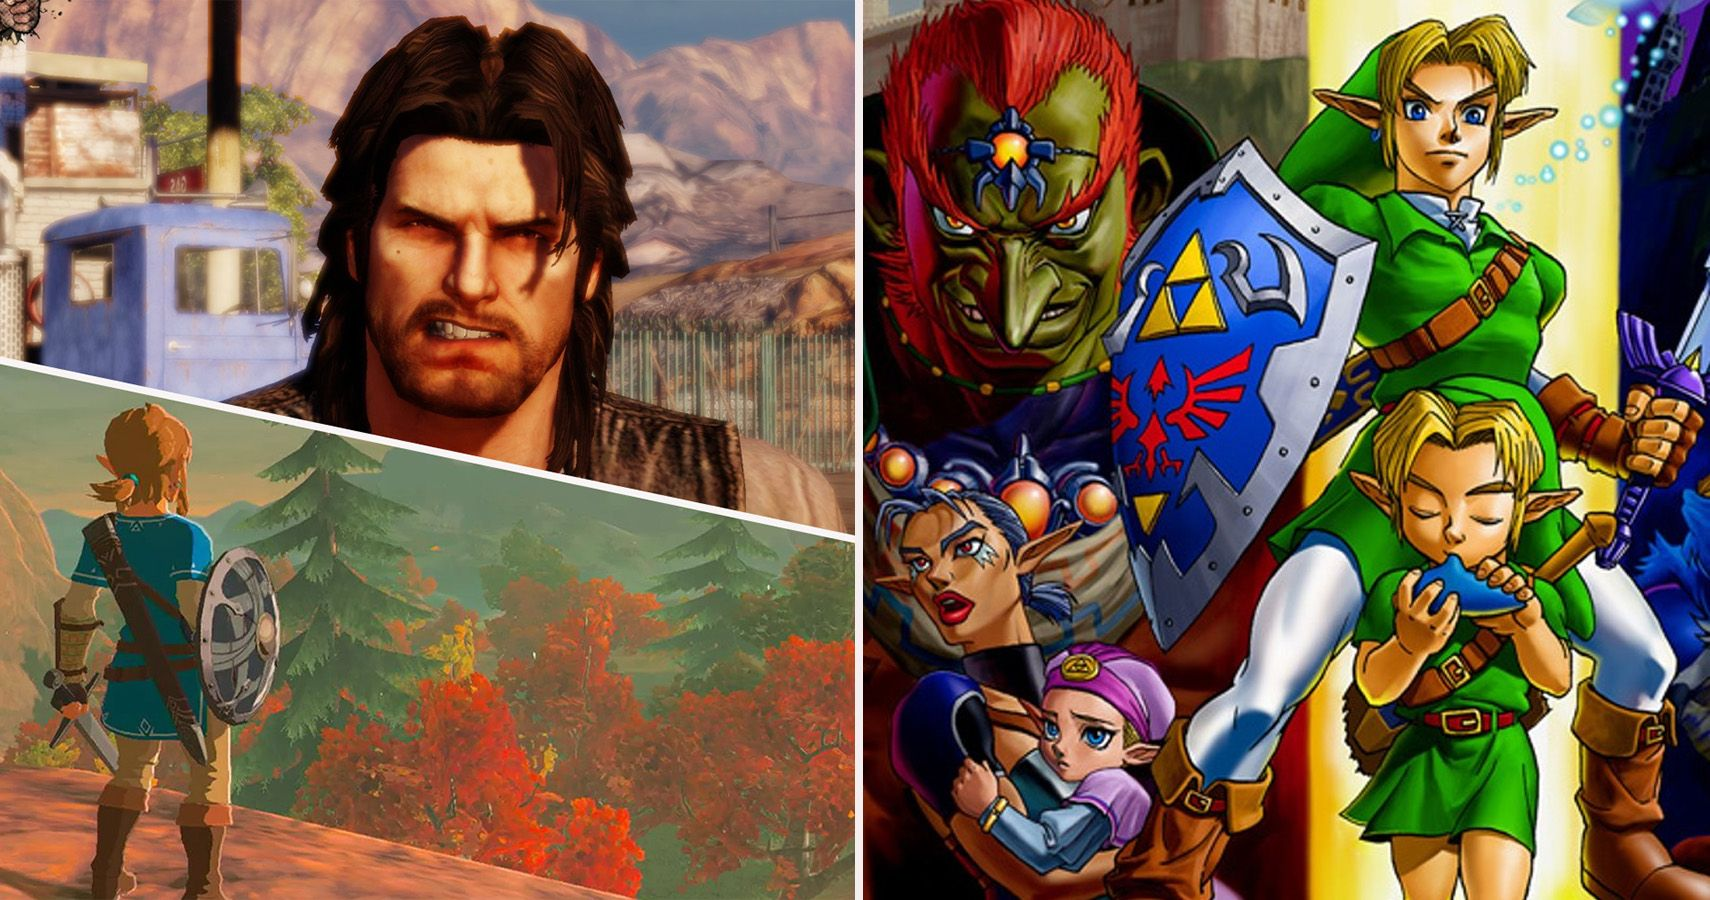 The 15 Highest Scoring Games On Metacritic And Why They're Great